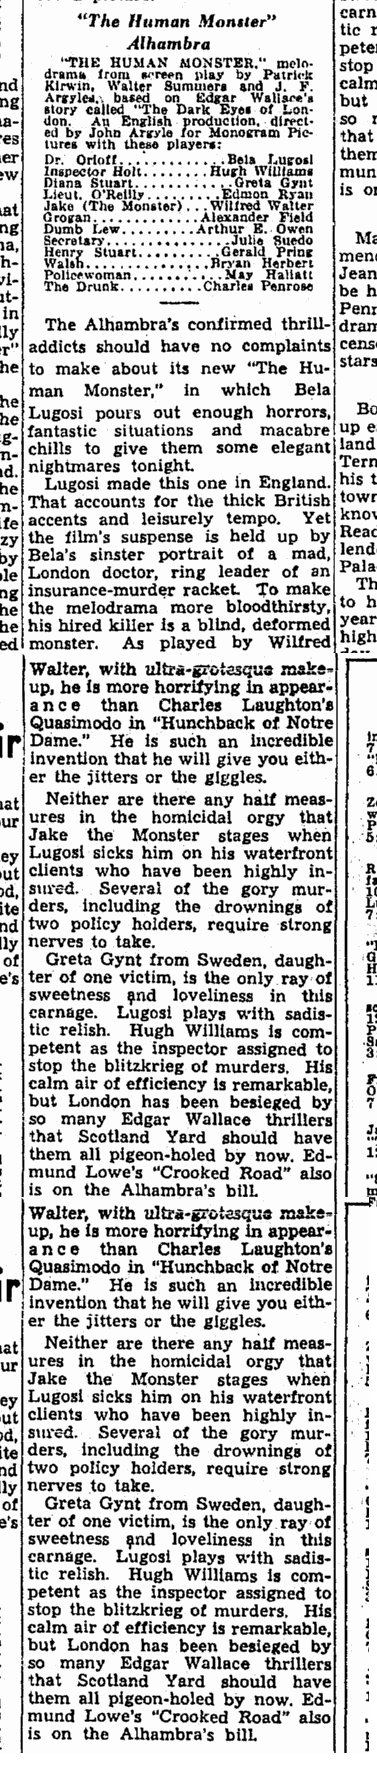 Human Monster, Cleveland Plain Dealer, June 14, 1940